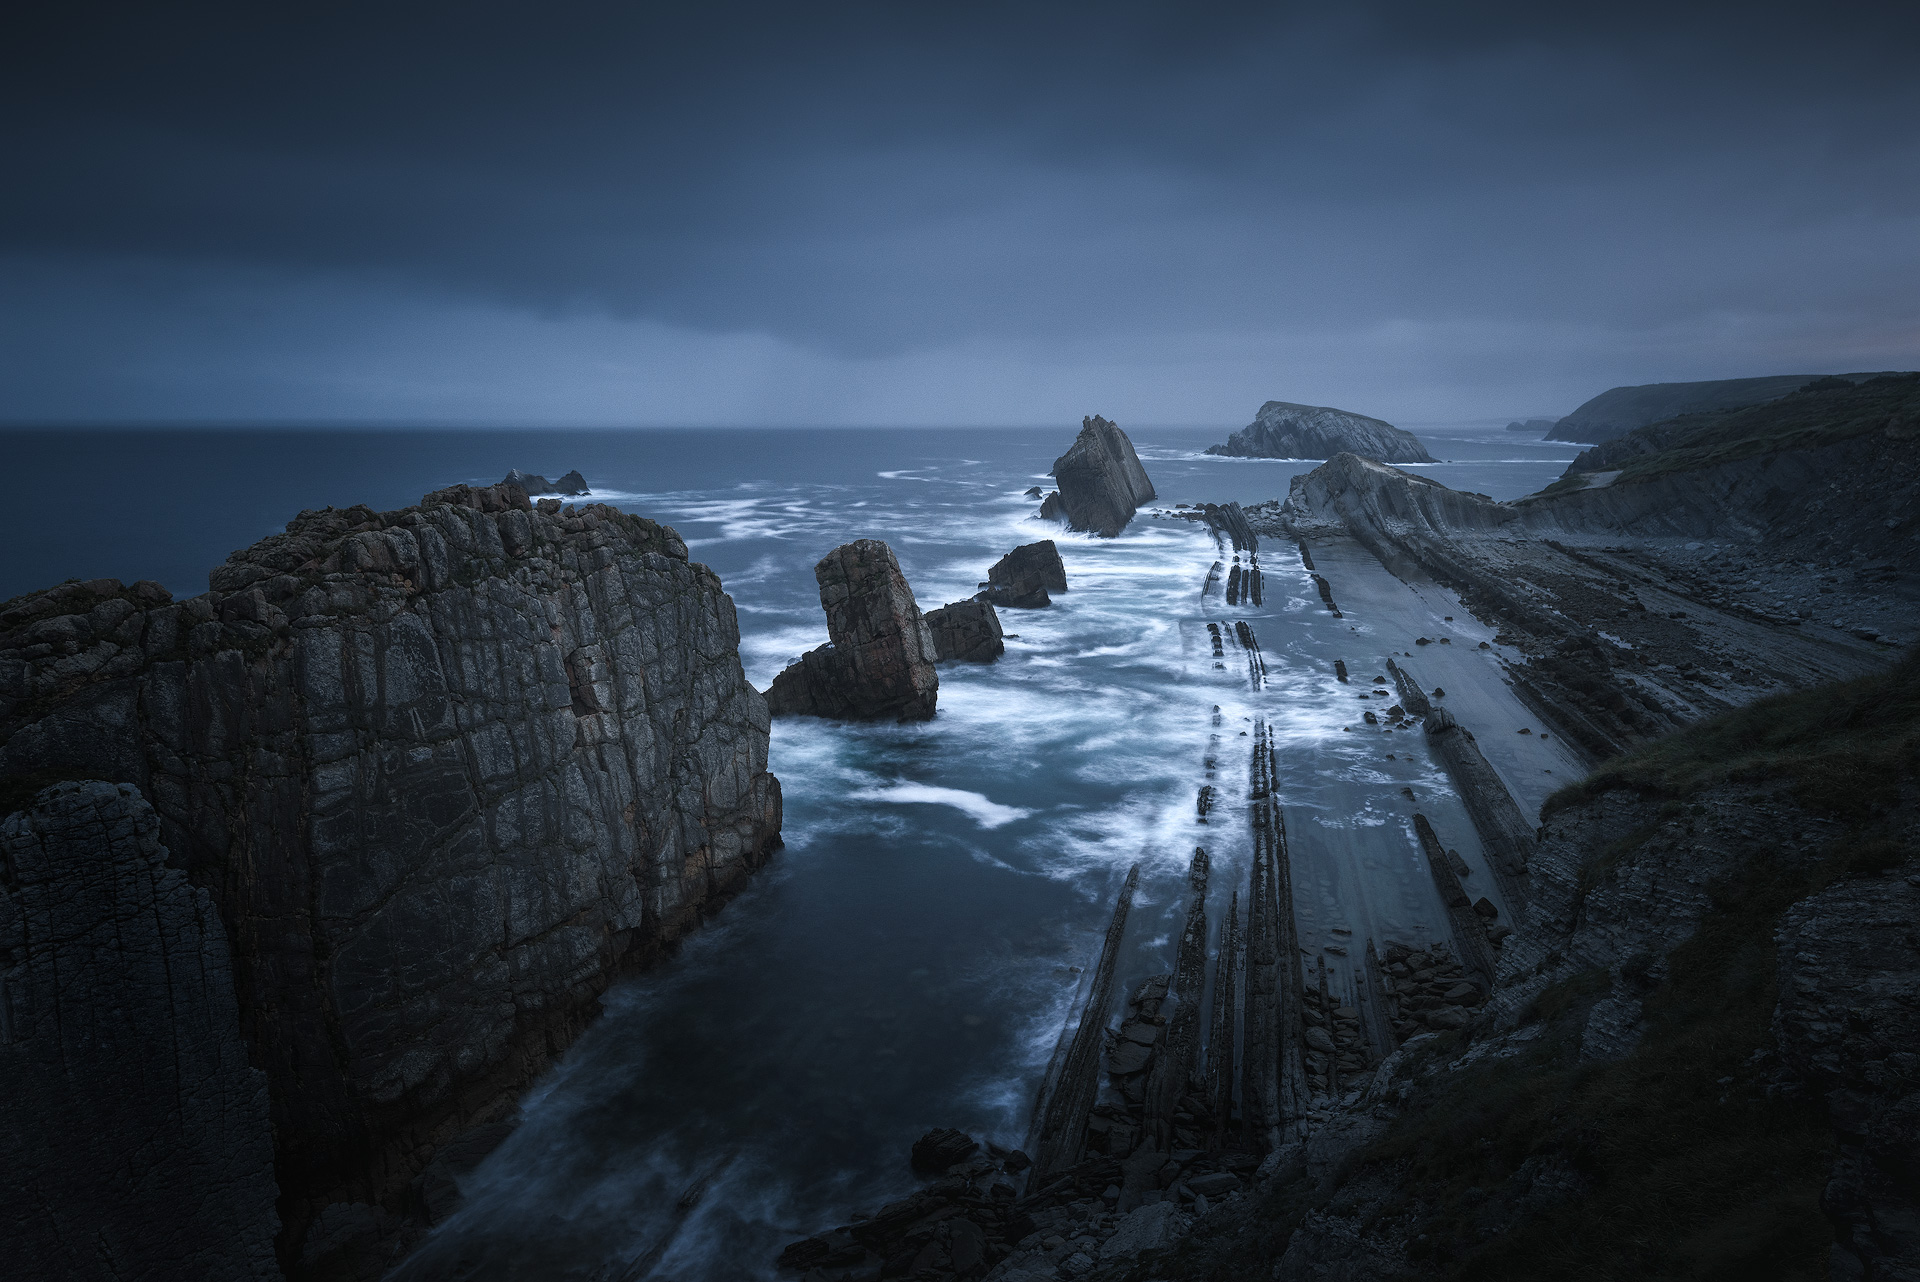 Moody rocky seascape from northern Spain